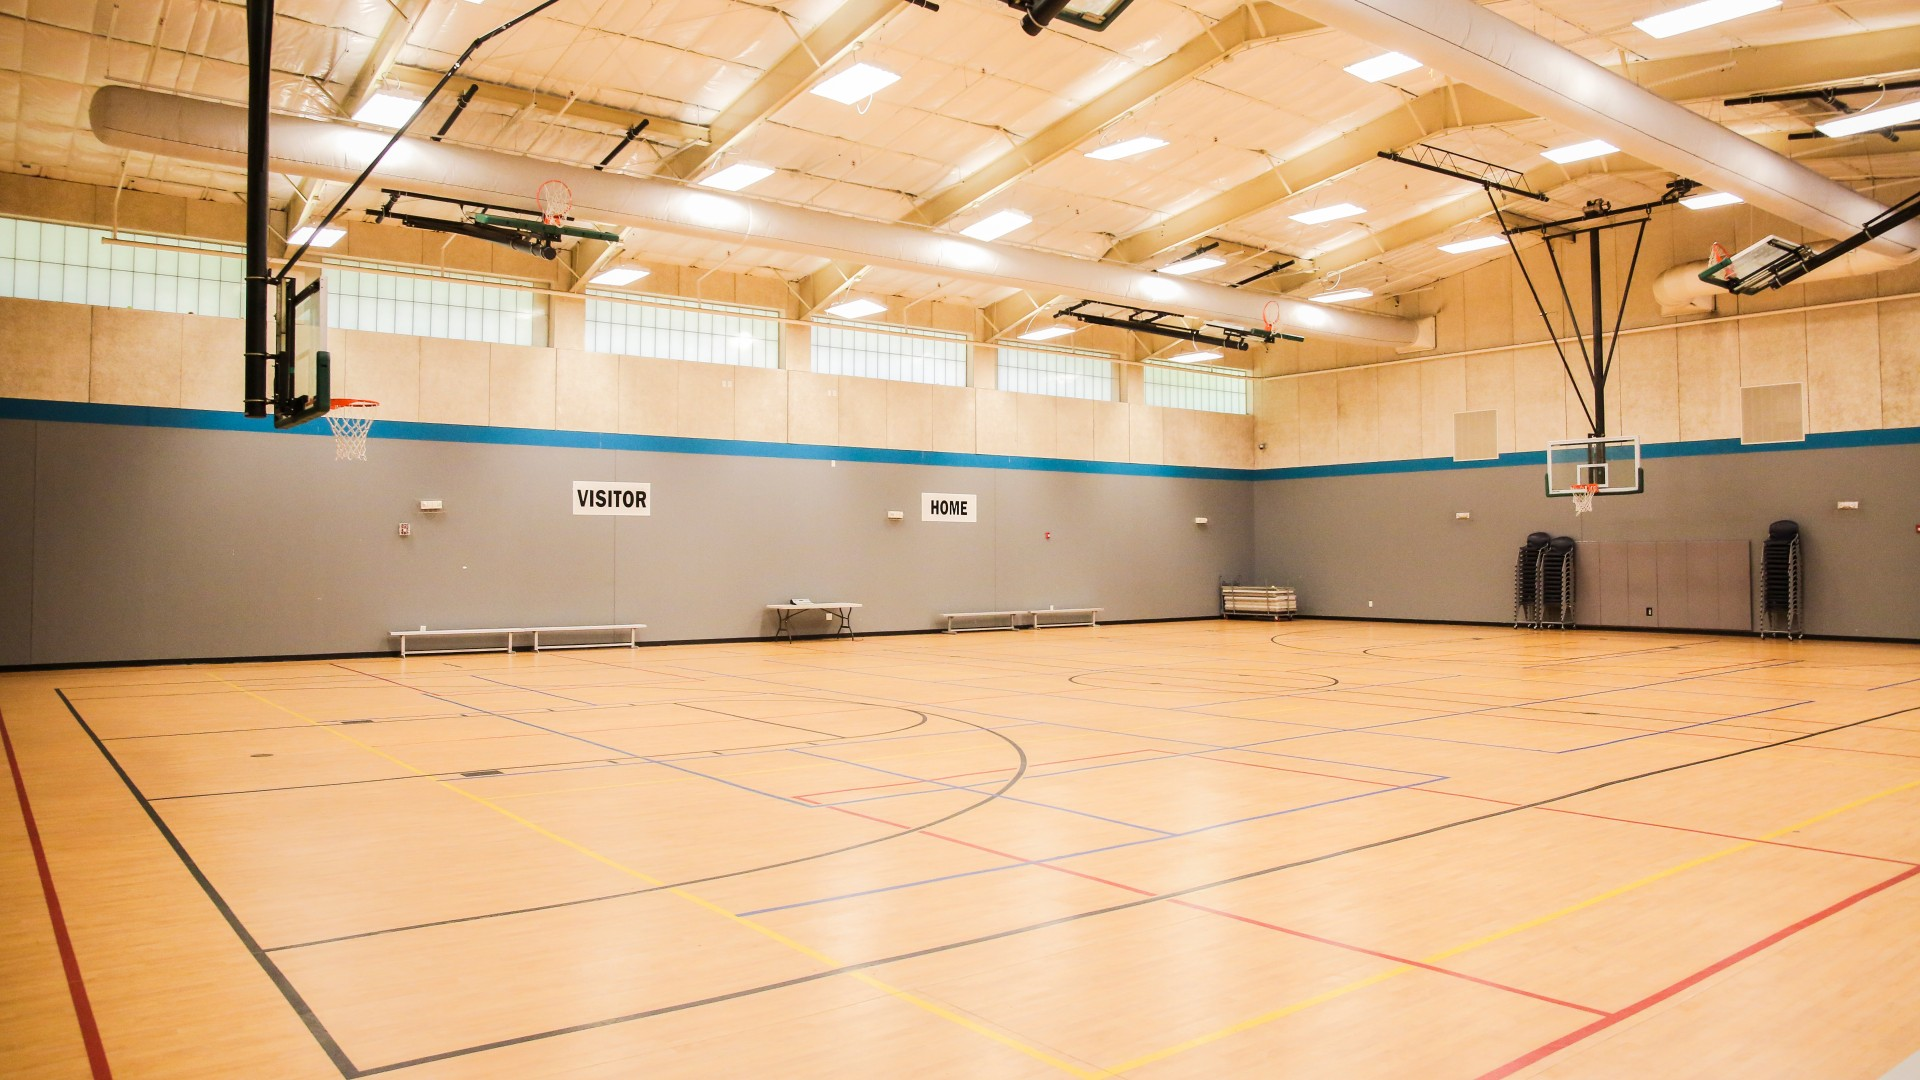 A second gymnasium with basketball courts at Green Road Park